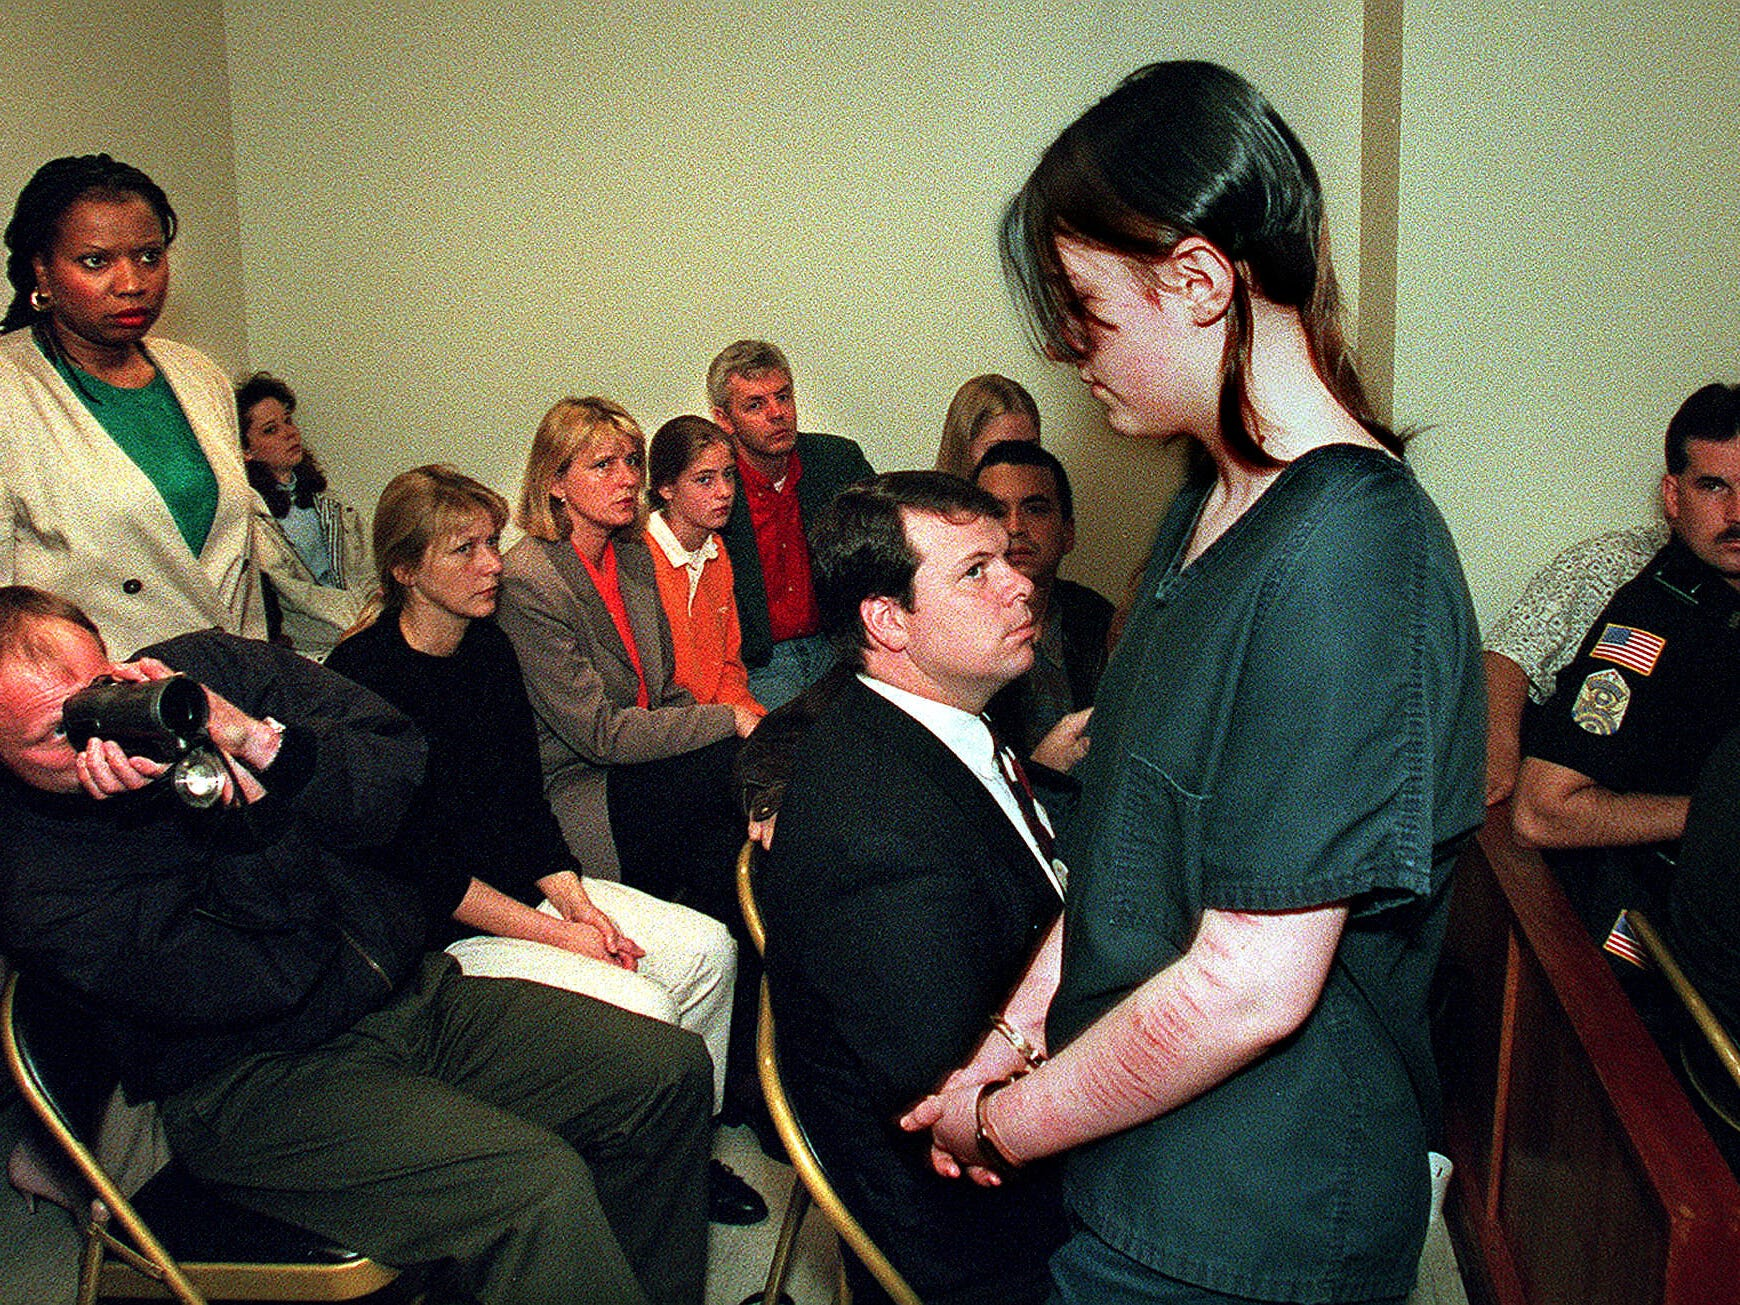 Eugen Lillelid photographs Natasha Walden Cornett as she leaves court April 15, 1997 after her arraignment in the slaying of Lillelid's brother, sister-in-law and their daughter. Relatives seated next to Eugen are, from left, Randi Heier, Marit Ekron and Linda and Odd Heir. Ed Runyonm seated in front of Eugen, and Brenda Hunter, standing behind, are members of the victim's church.